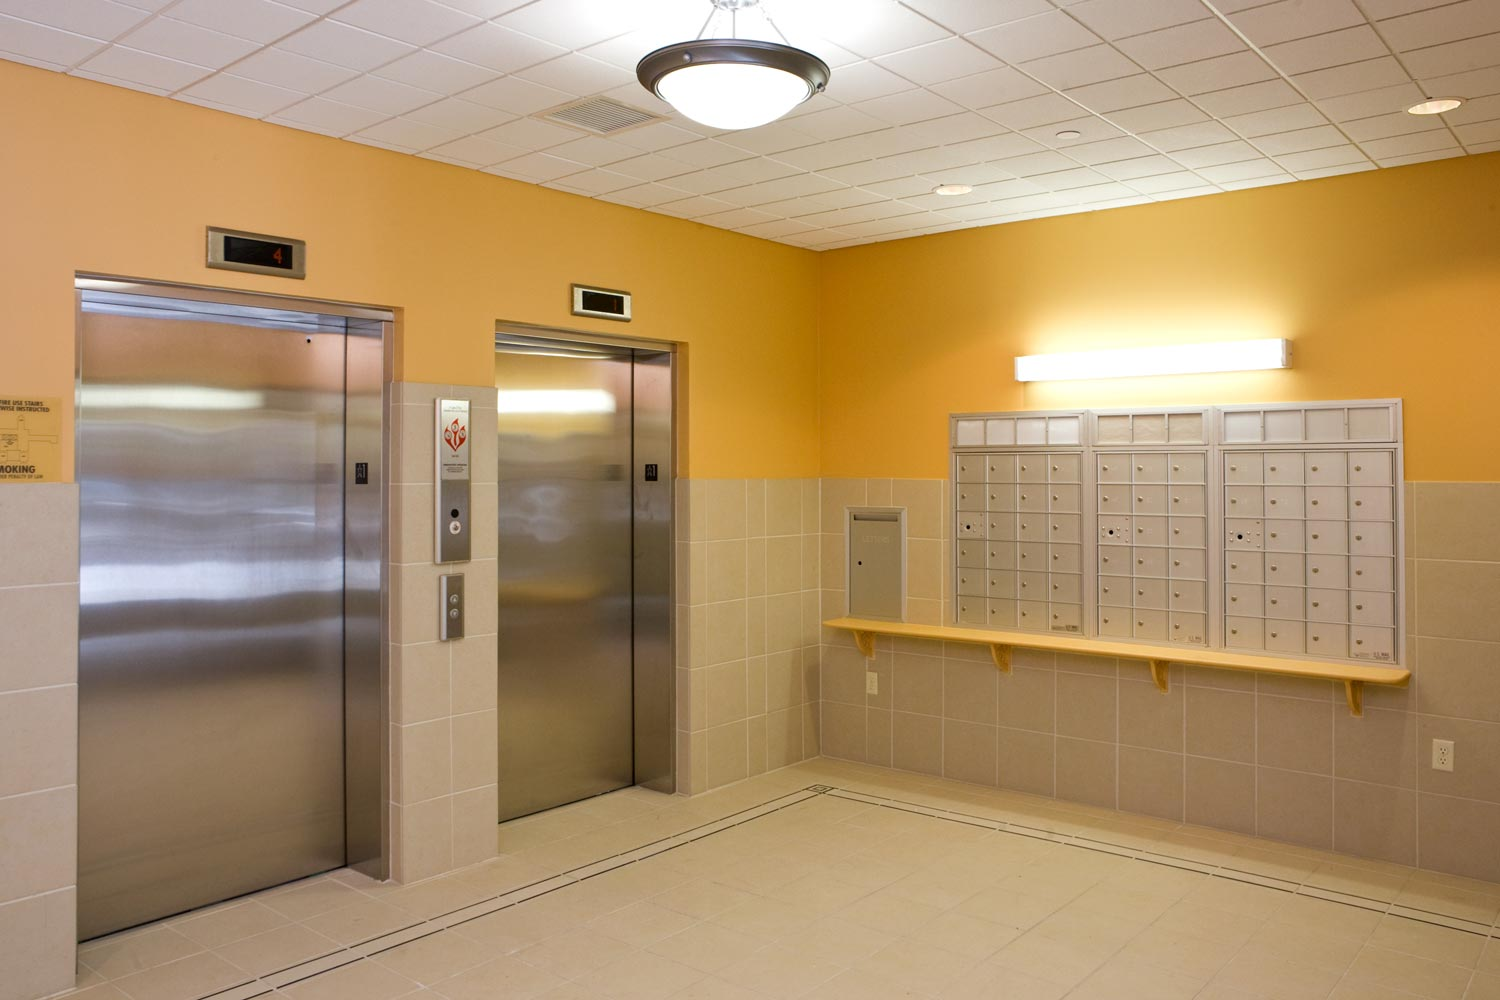 The elevator lobby and mail room at Jacob's Place Apartments in the Bronx.